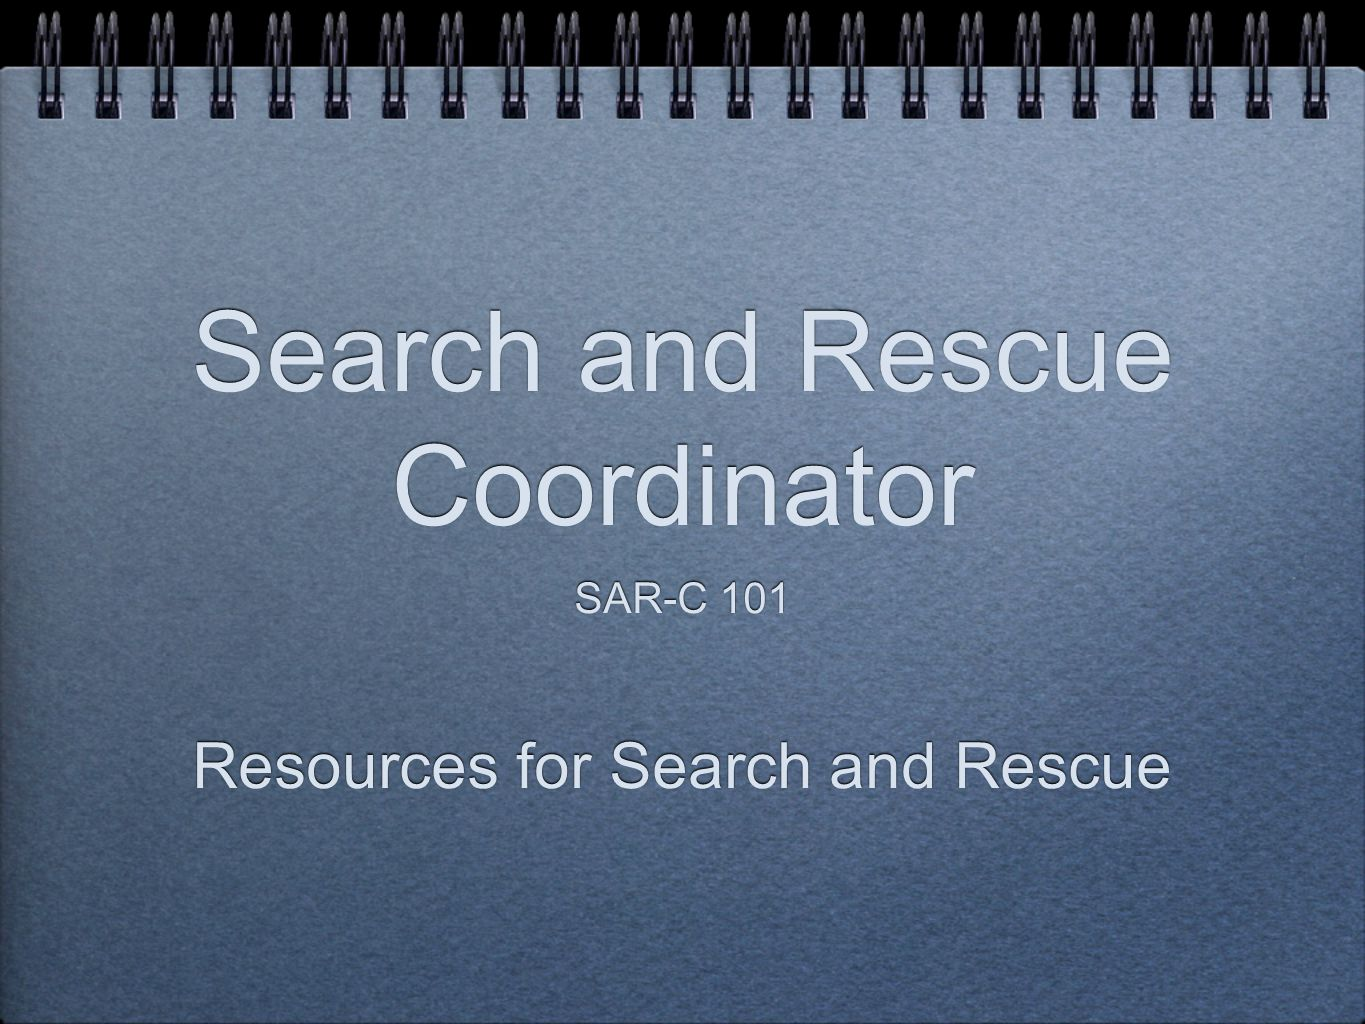 Search and Rescue Coordinator SAR-C 101 Resources for Search and Rescue SAR-C 101 Resources for Search and Rescue